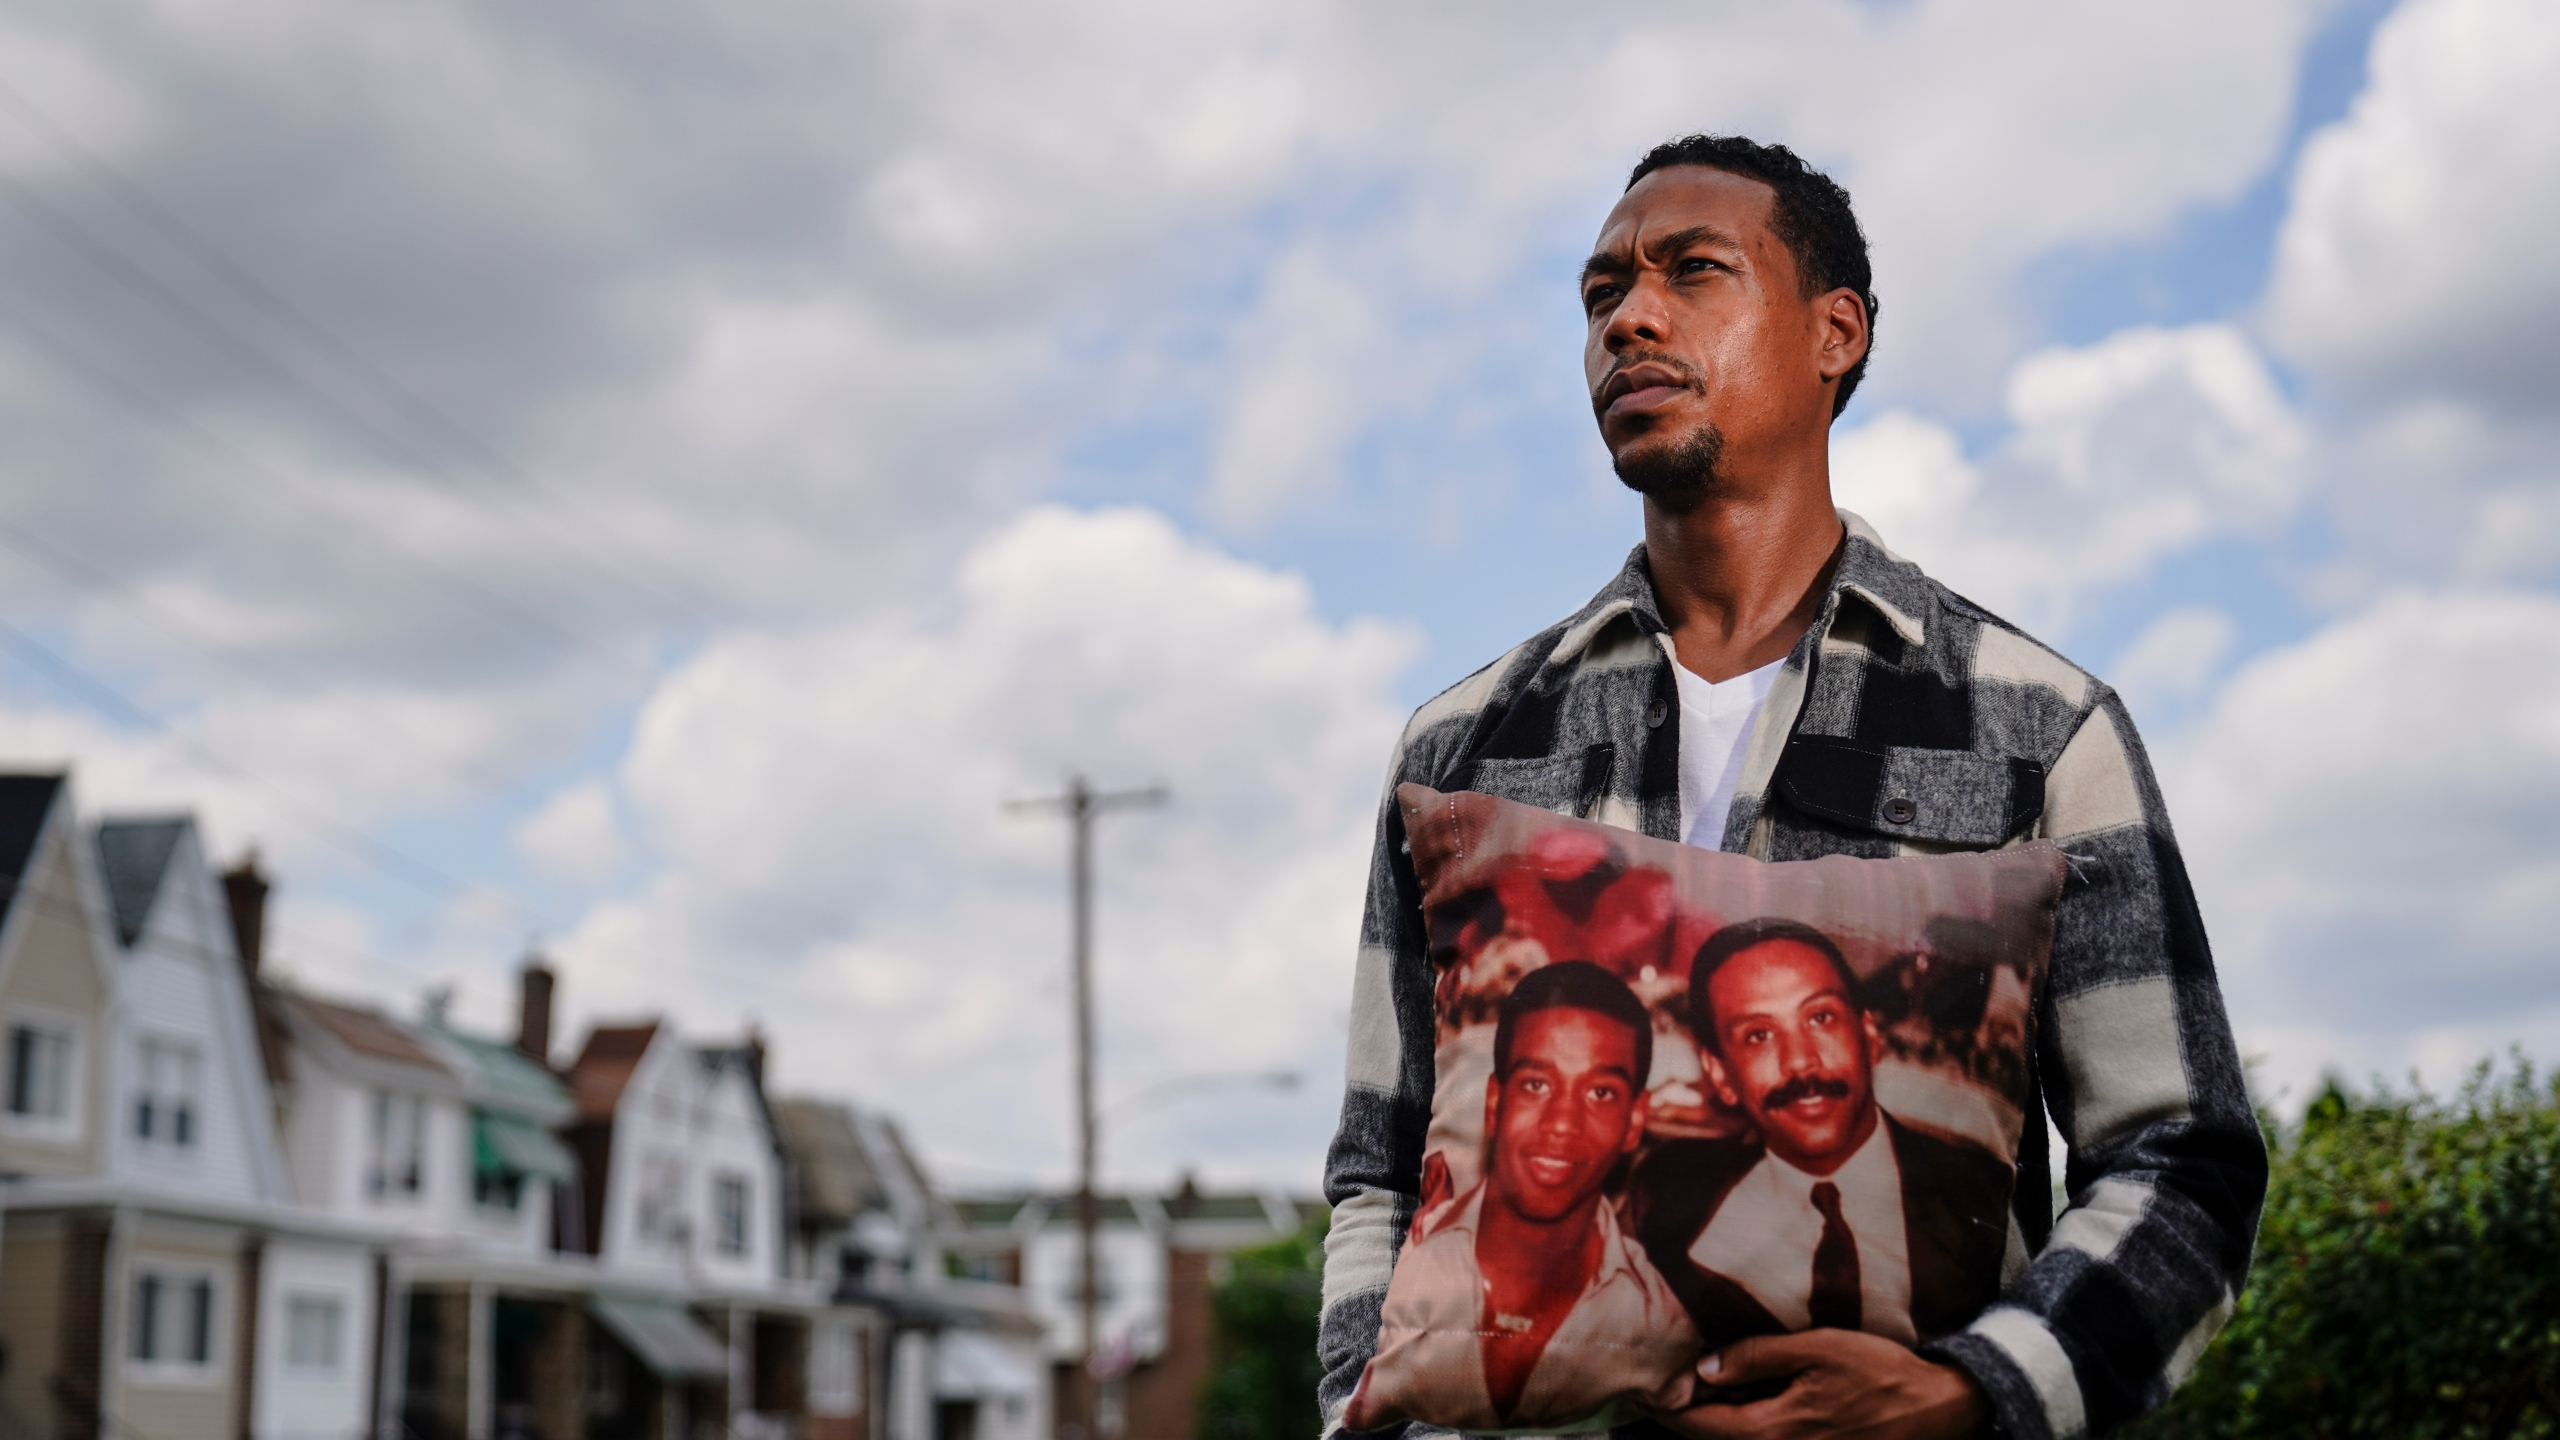 In this July 9, 2021, photo Brett Roman Williams poses for a photograph while holding a pillow with a photo of his father, Donald Williams, lower right, and brother Derrick Williams who both were killed by gunfire 20 years apart, in Philadelphia. (AP Photo/Matt Rourke)